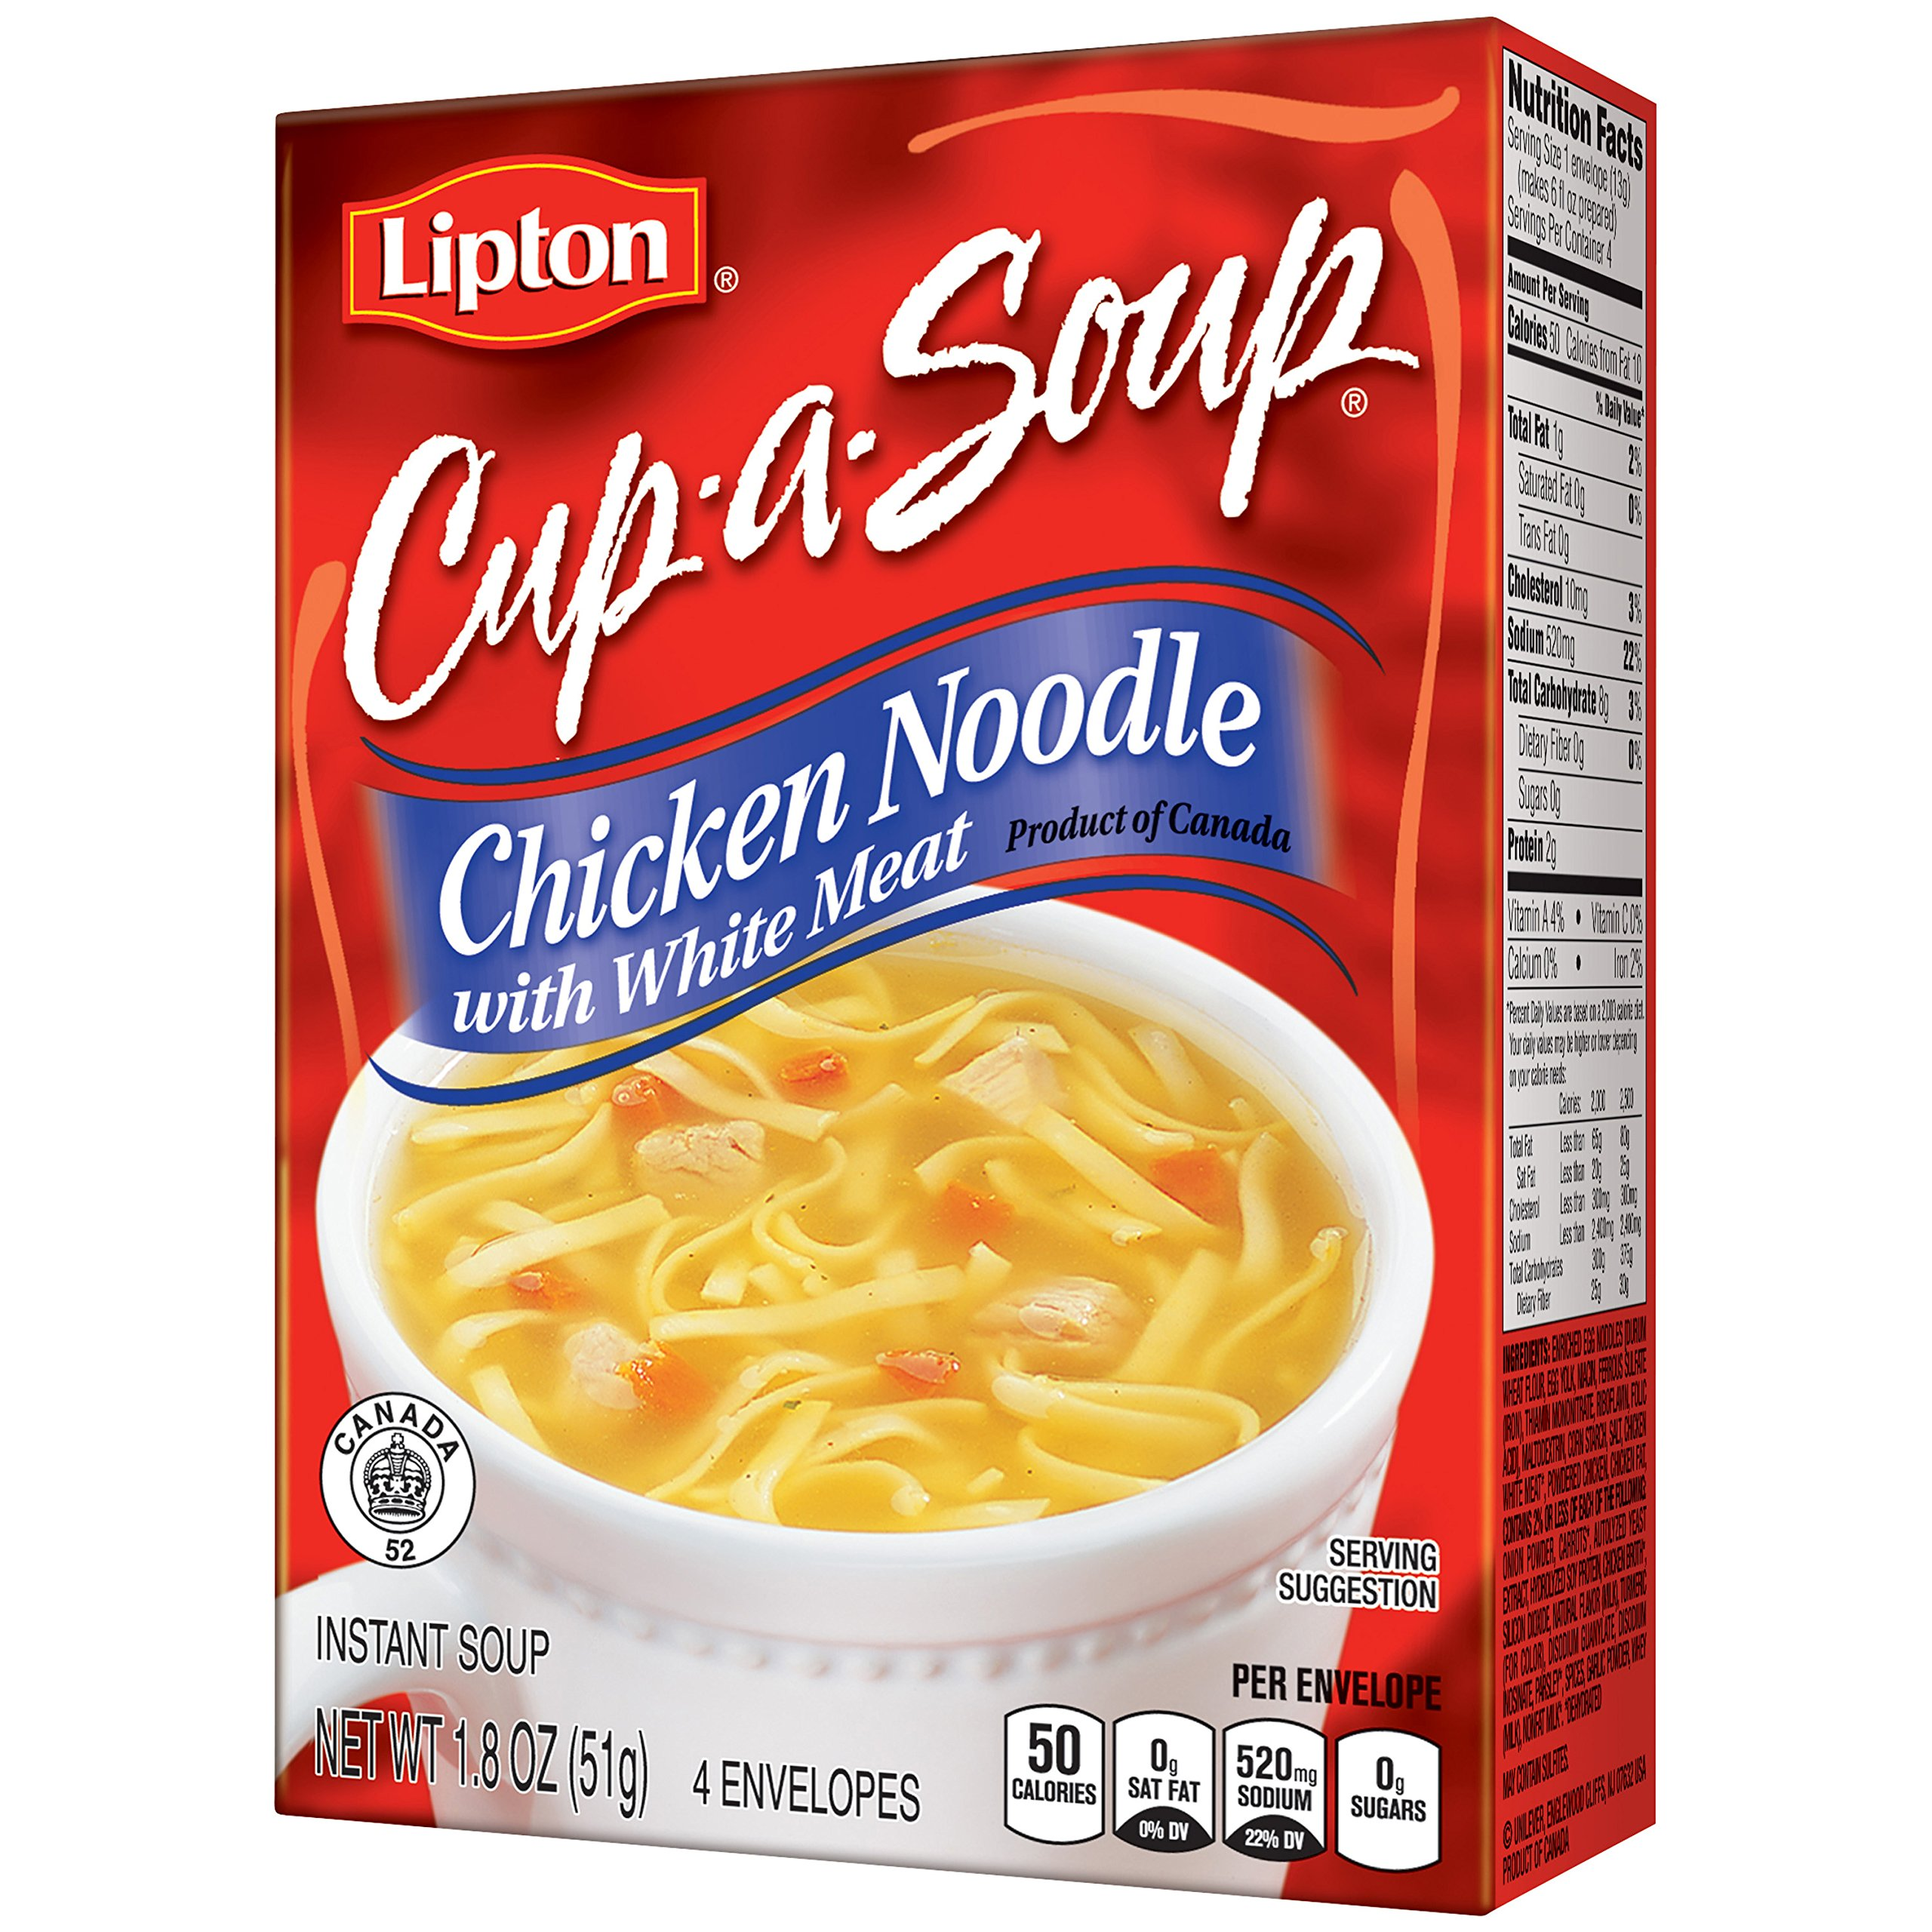 Lipton Cup-A-Soup Instant Soup Mix, Chicken Noodle with White Meat 1.8 oz,pack of 12